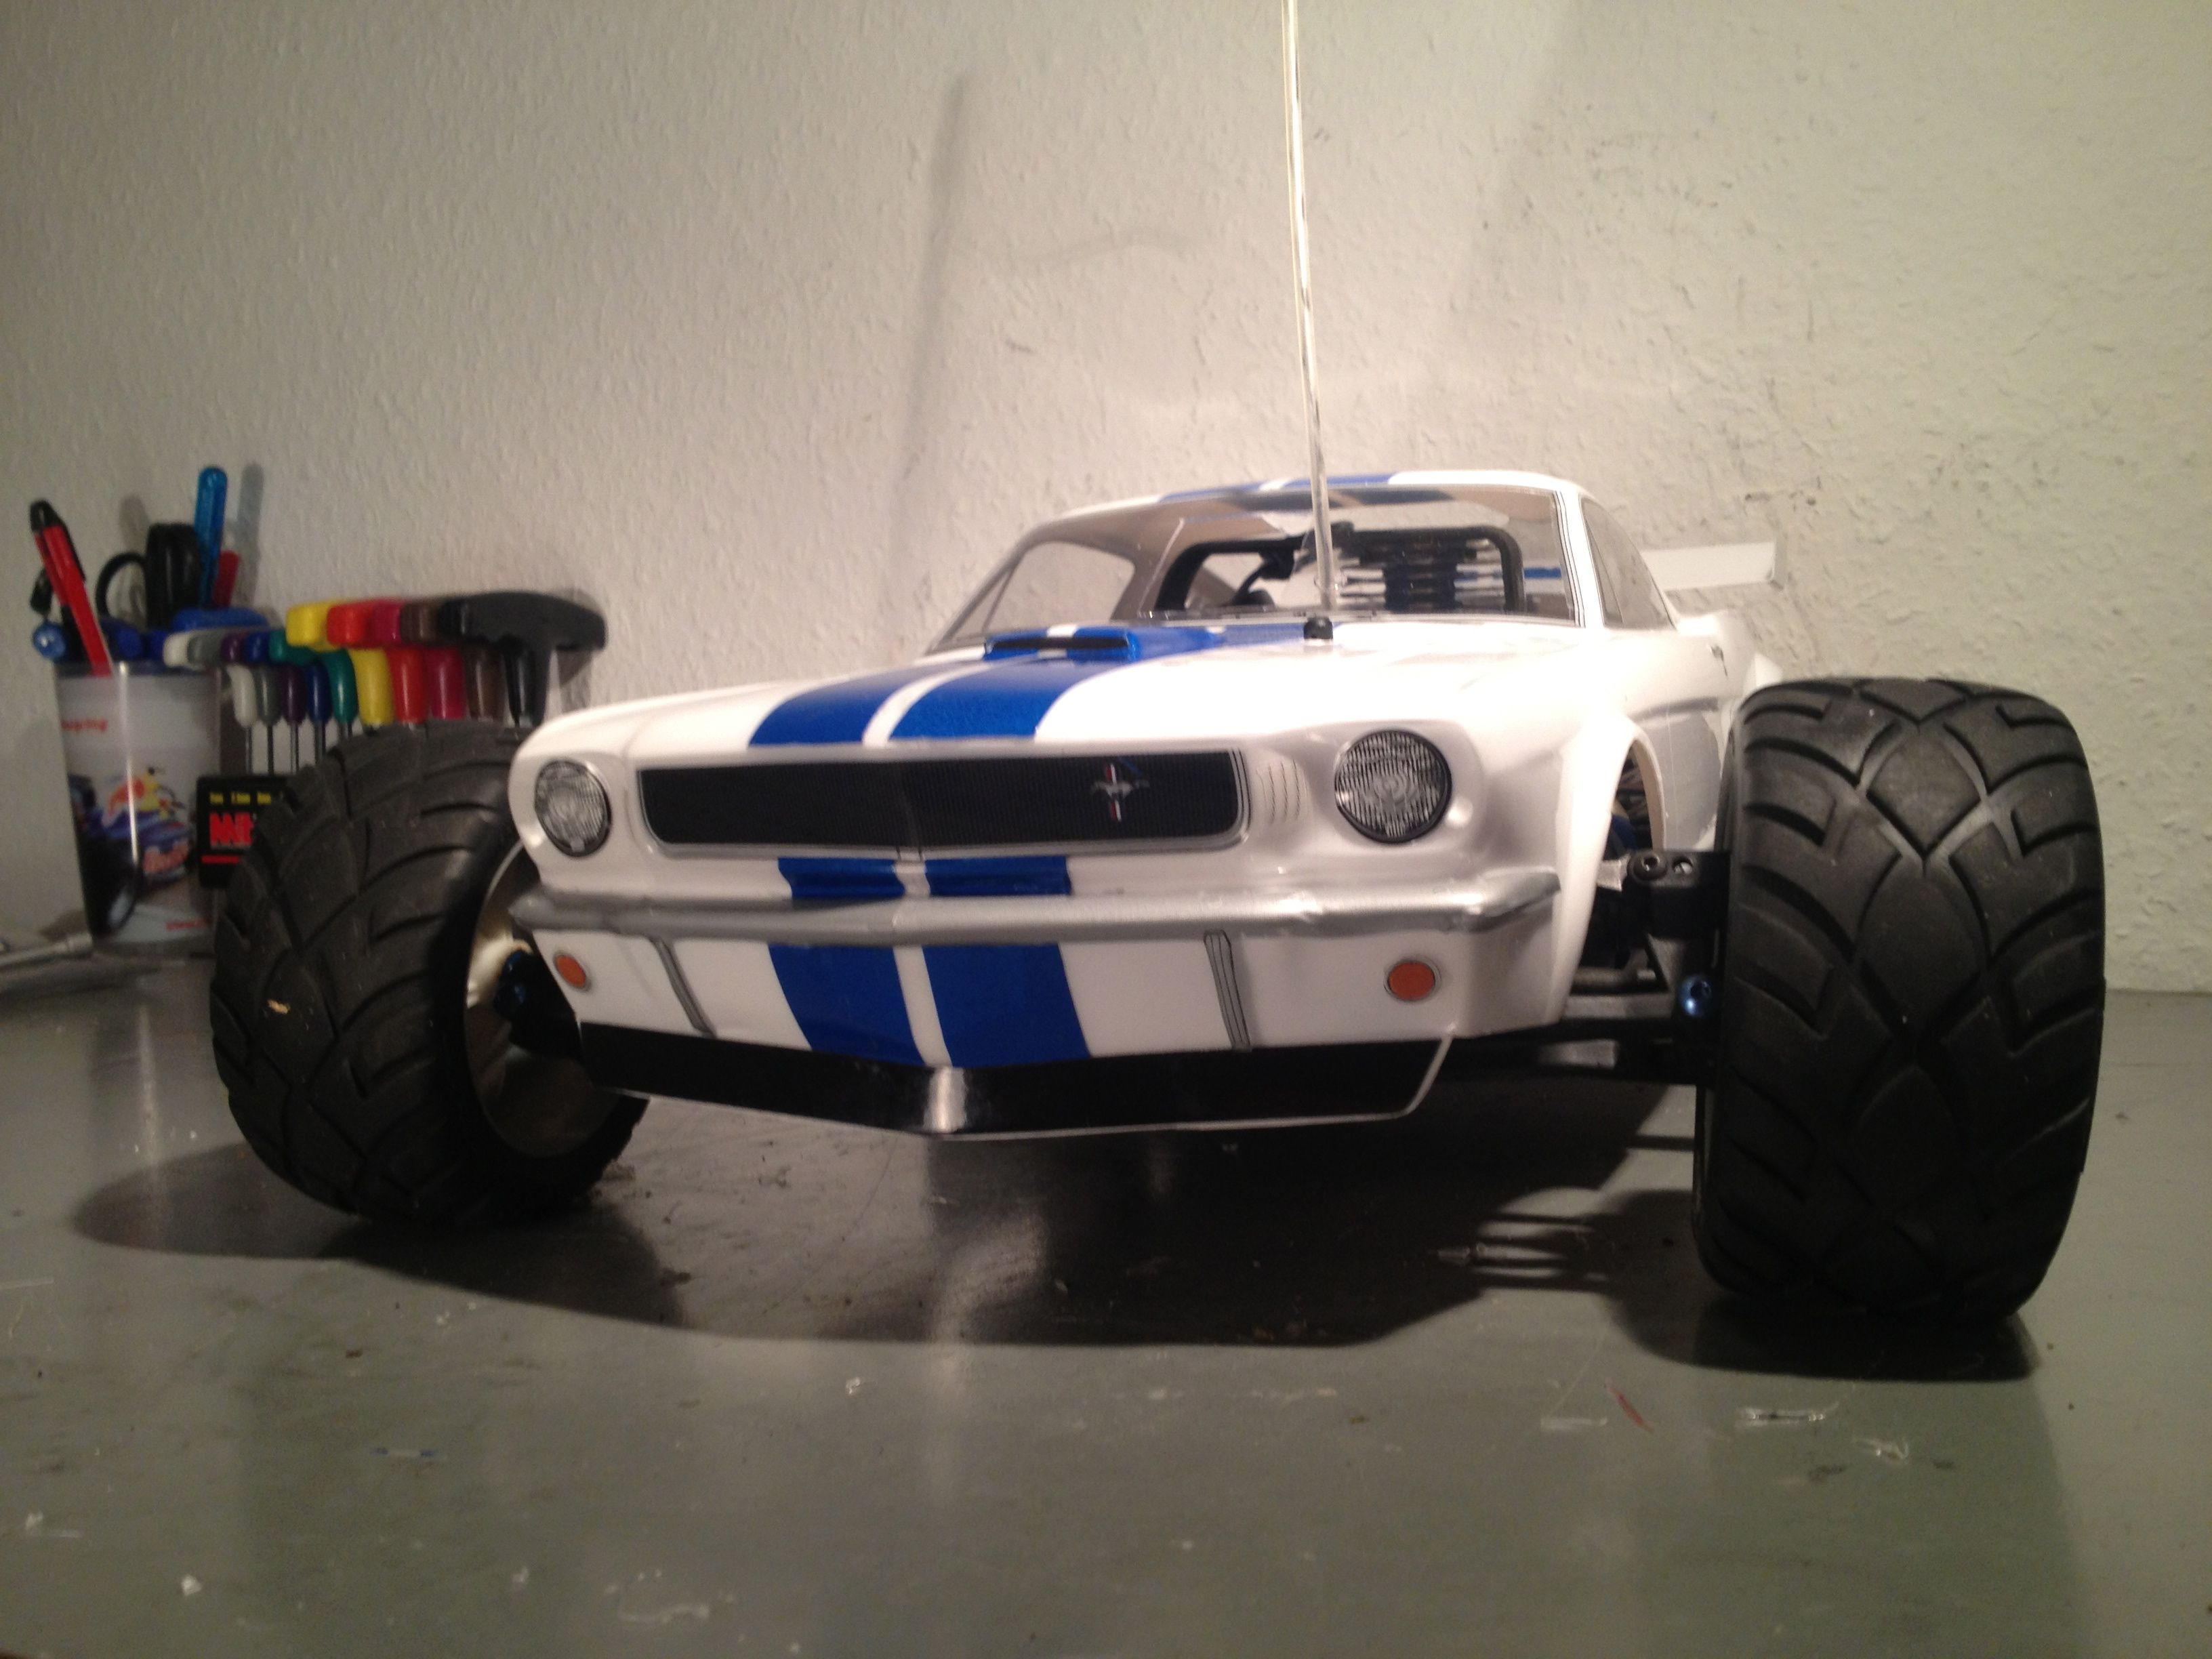 Shelby Mustang Body Traxxas Jato Remote Control Rc